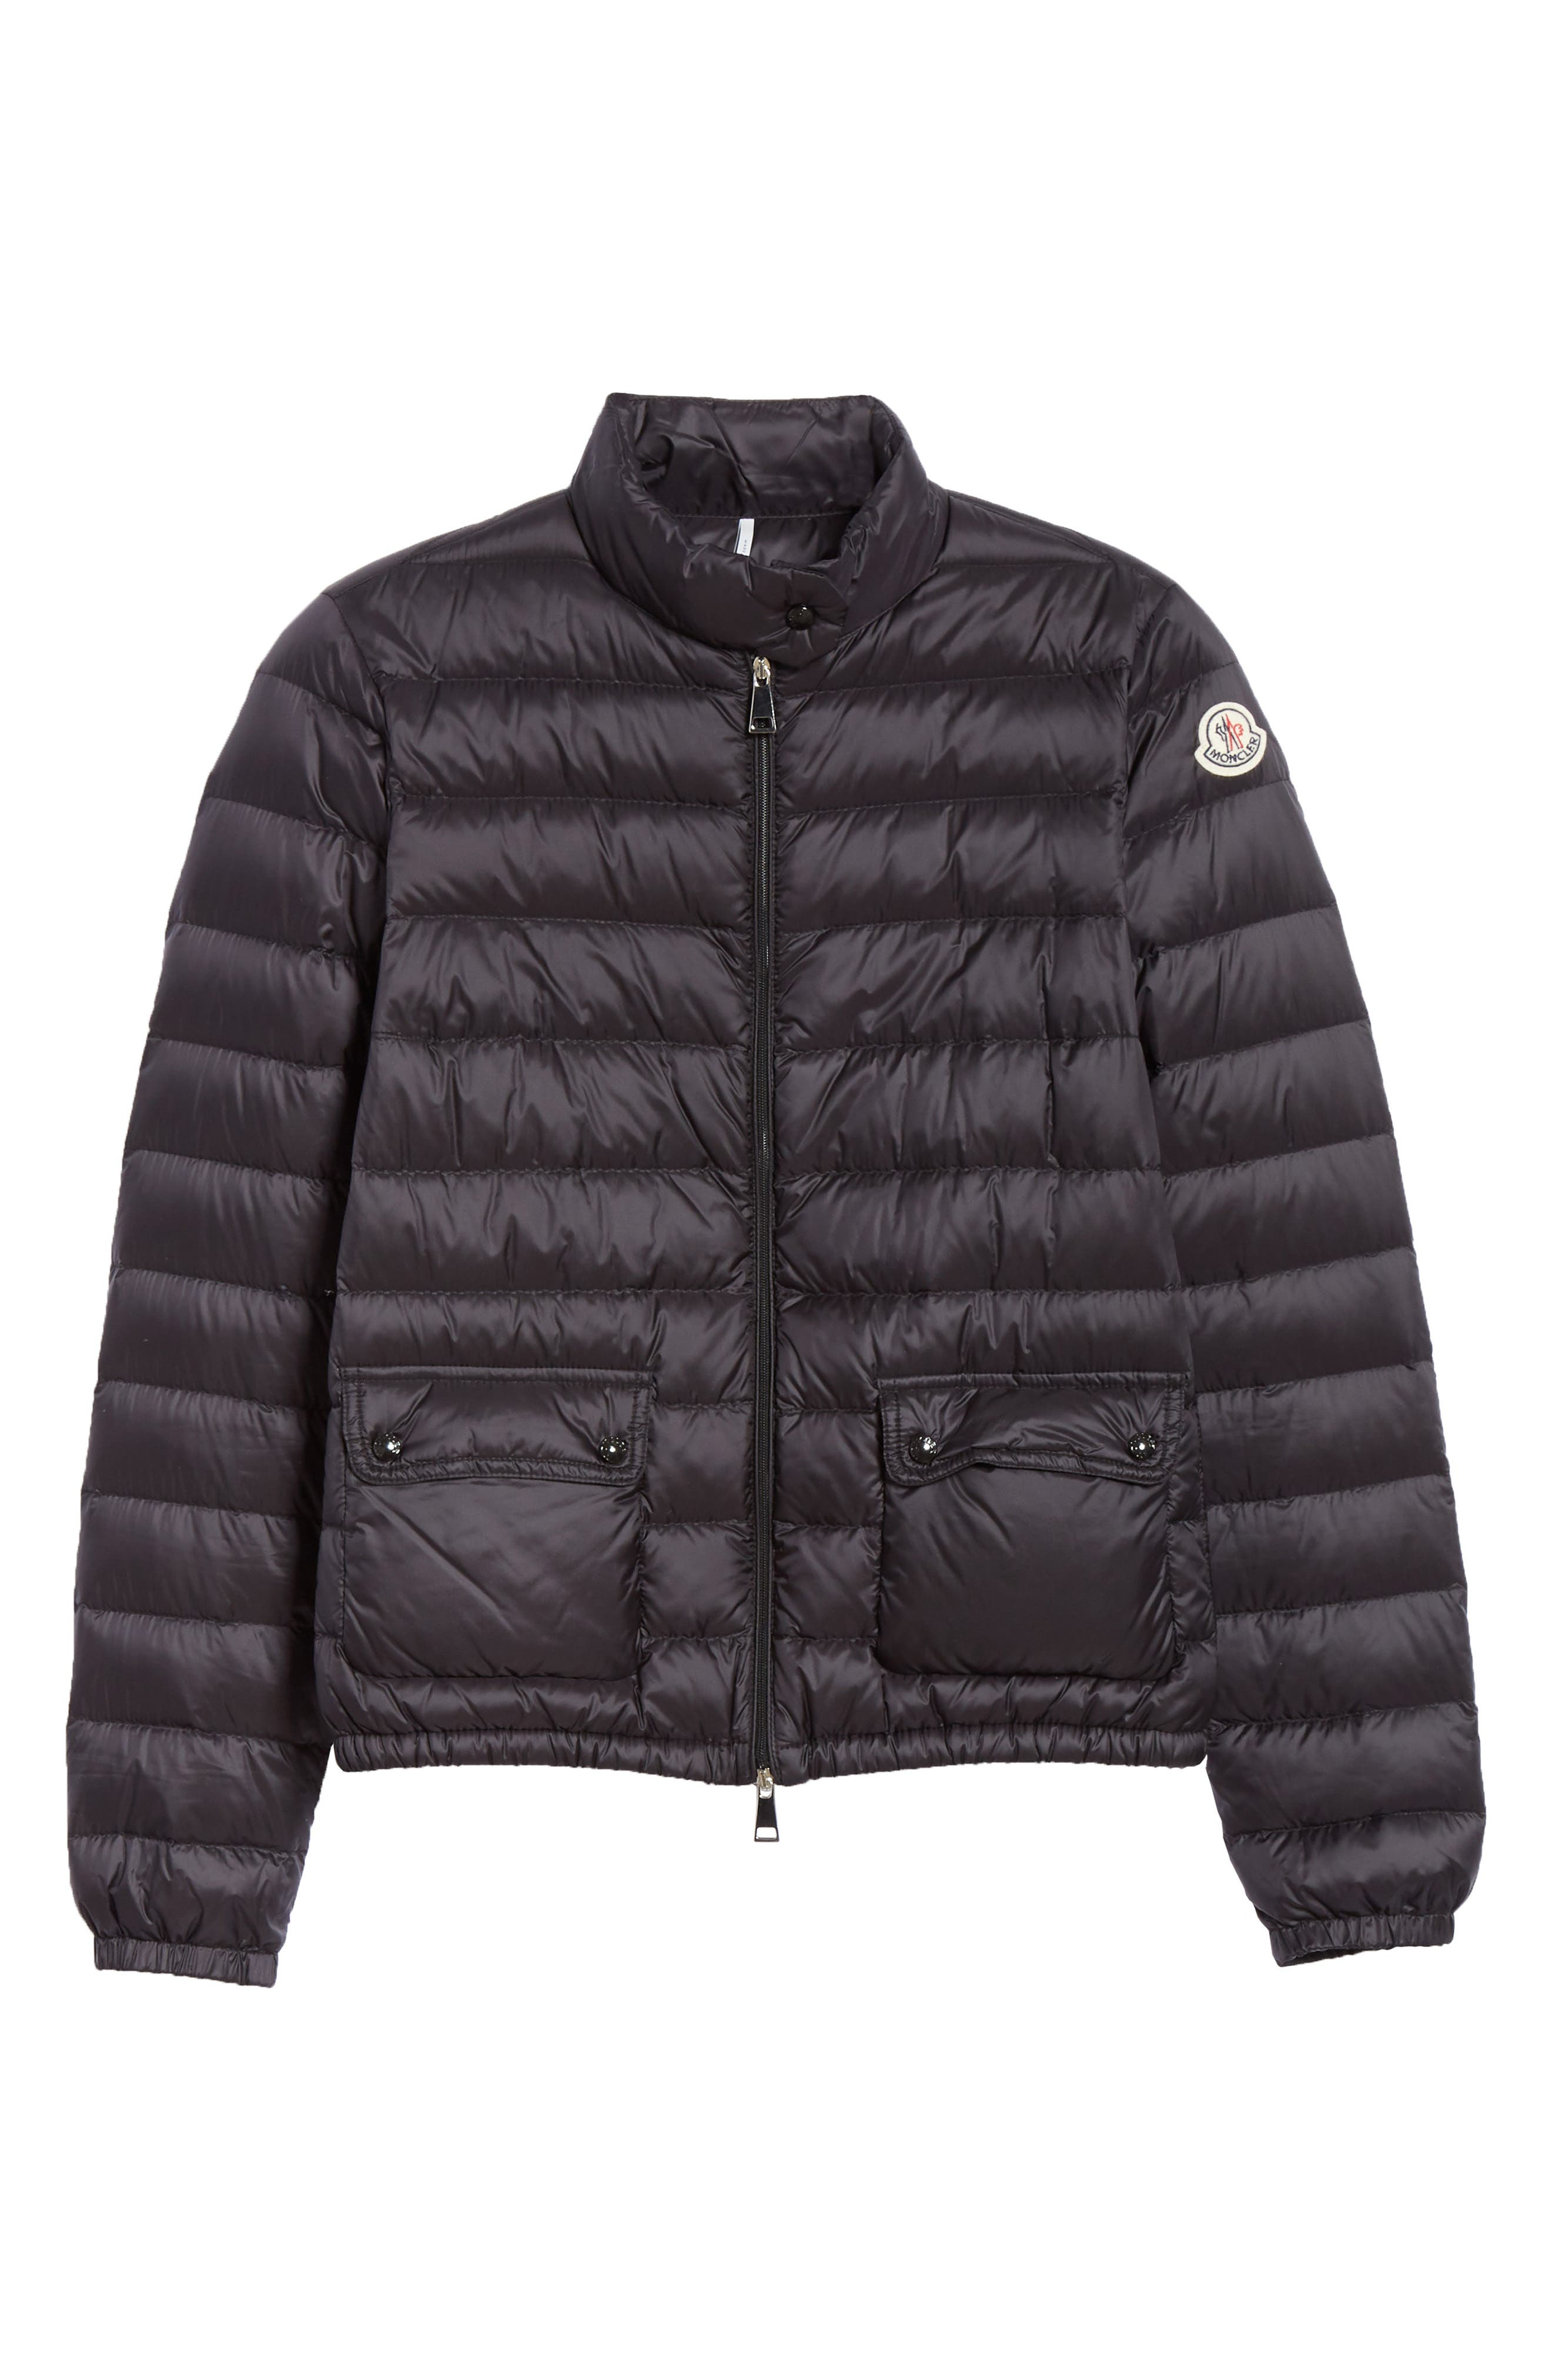 Lans Water Resistant Quilted Down Jacket,                             Alternate thumbnail 5, color,                             BLACK